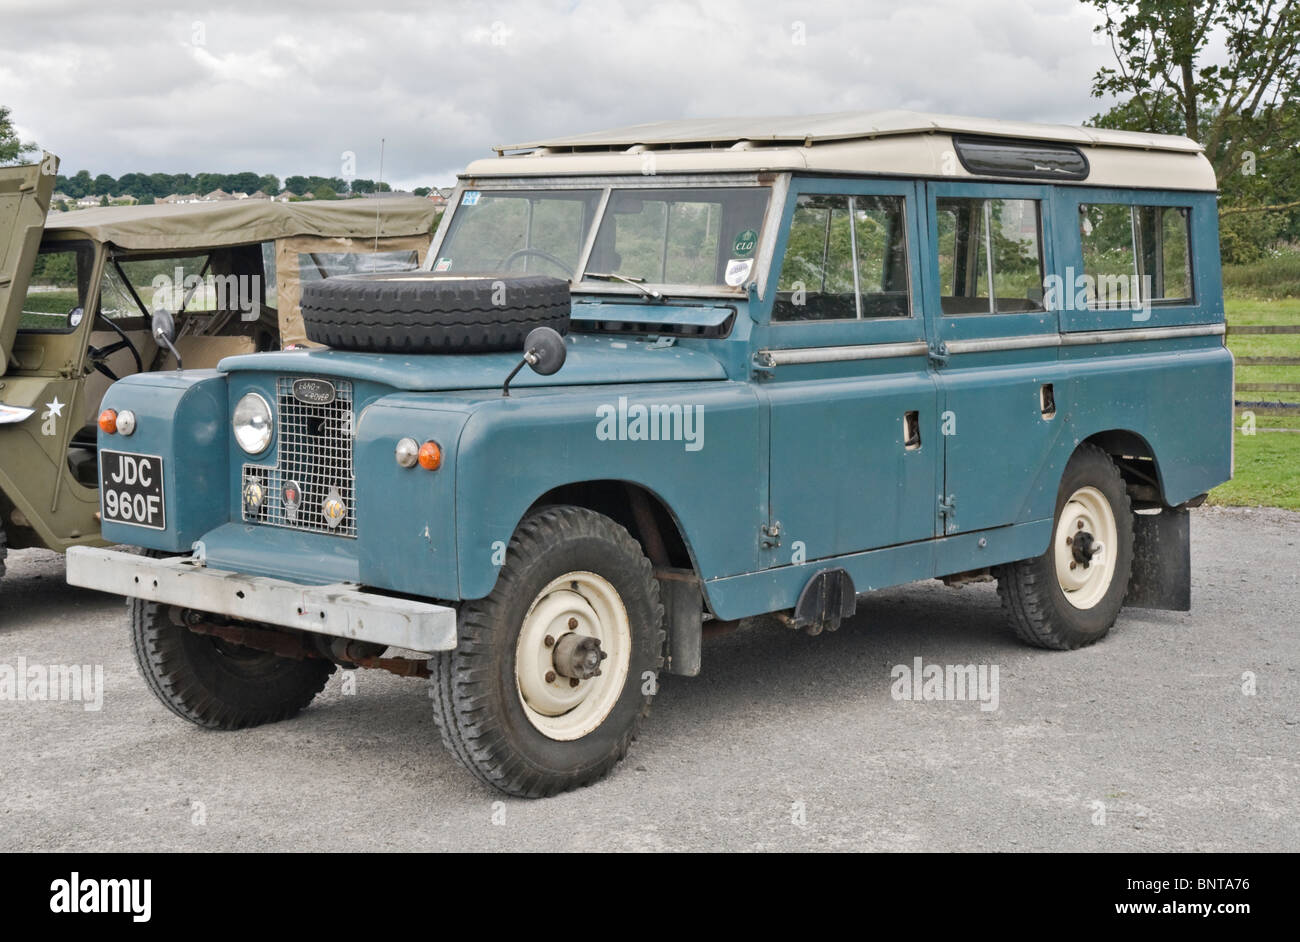 Land rover series ii long wheel base parked next to an old jeep at a rally in yorkshire